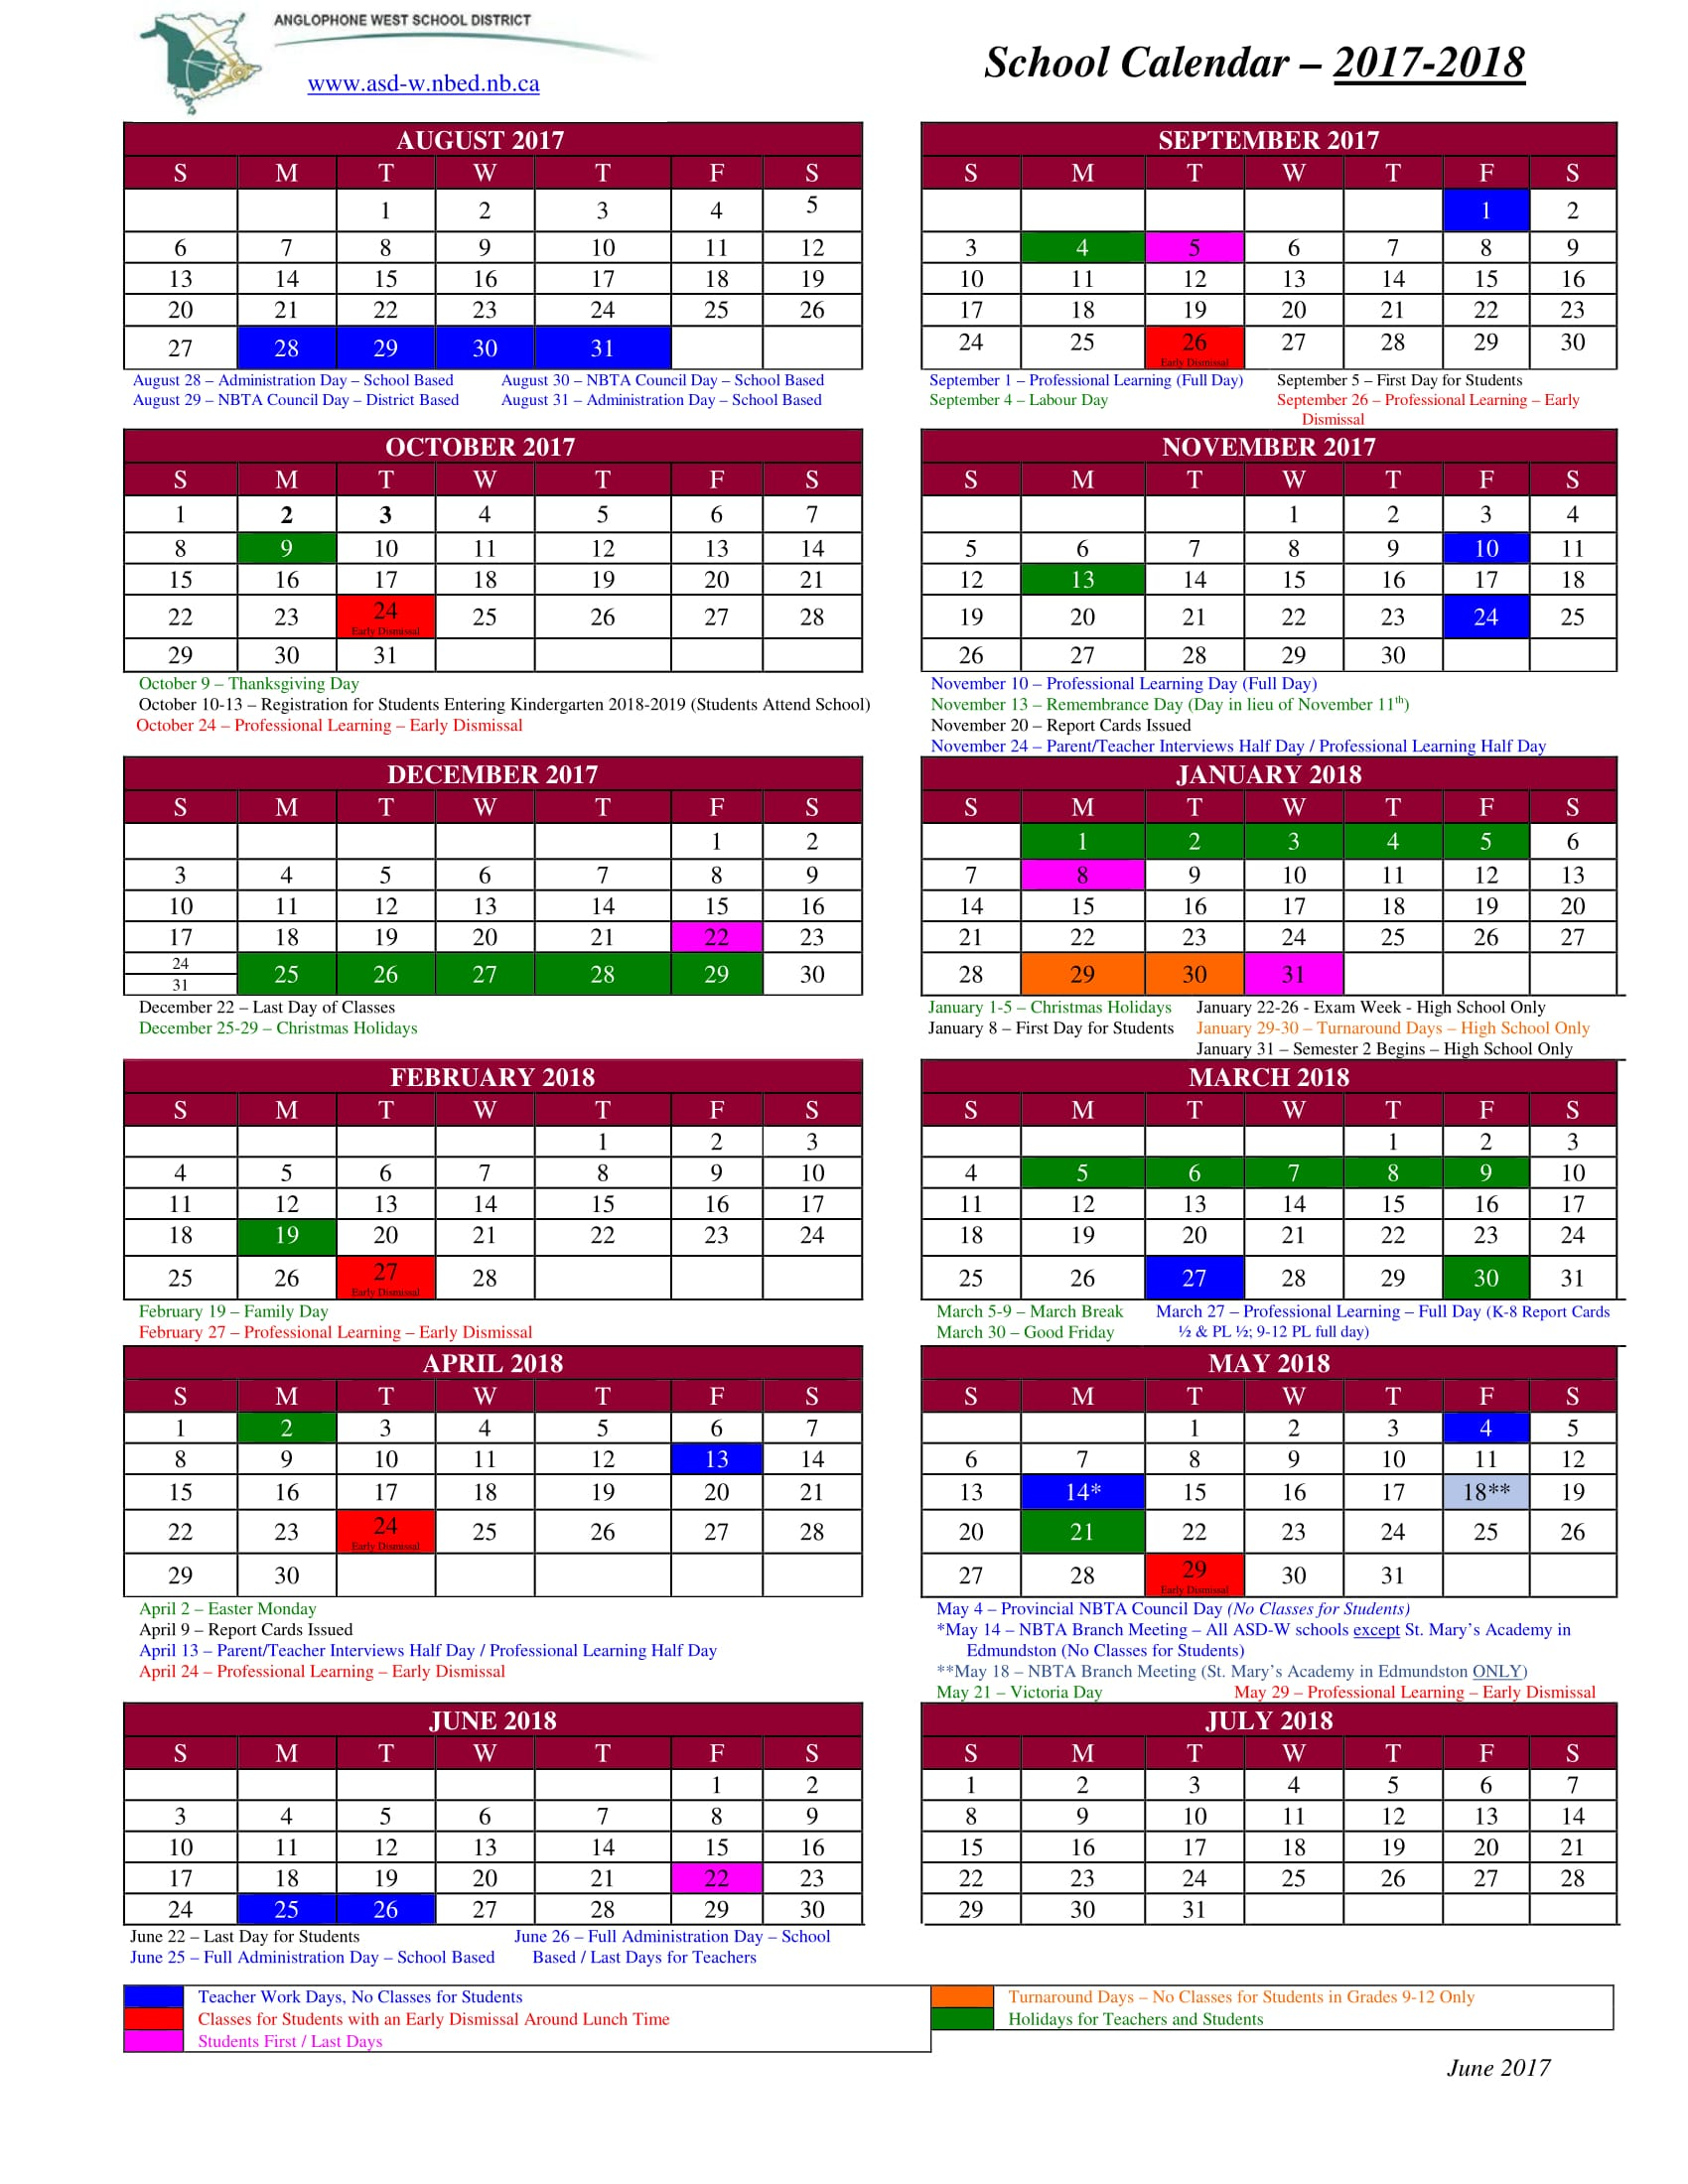 District News   School year calendar for 2017 18